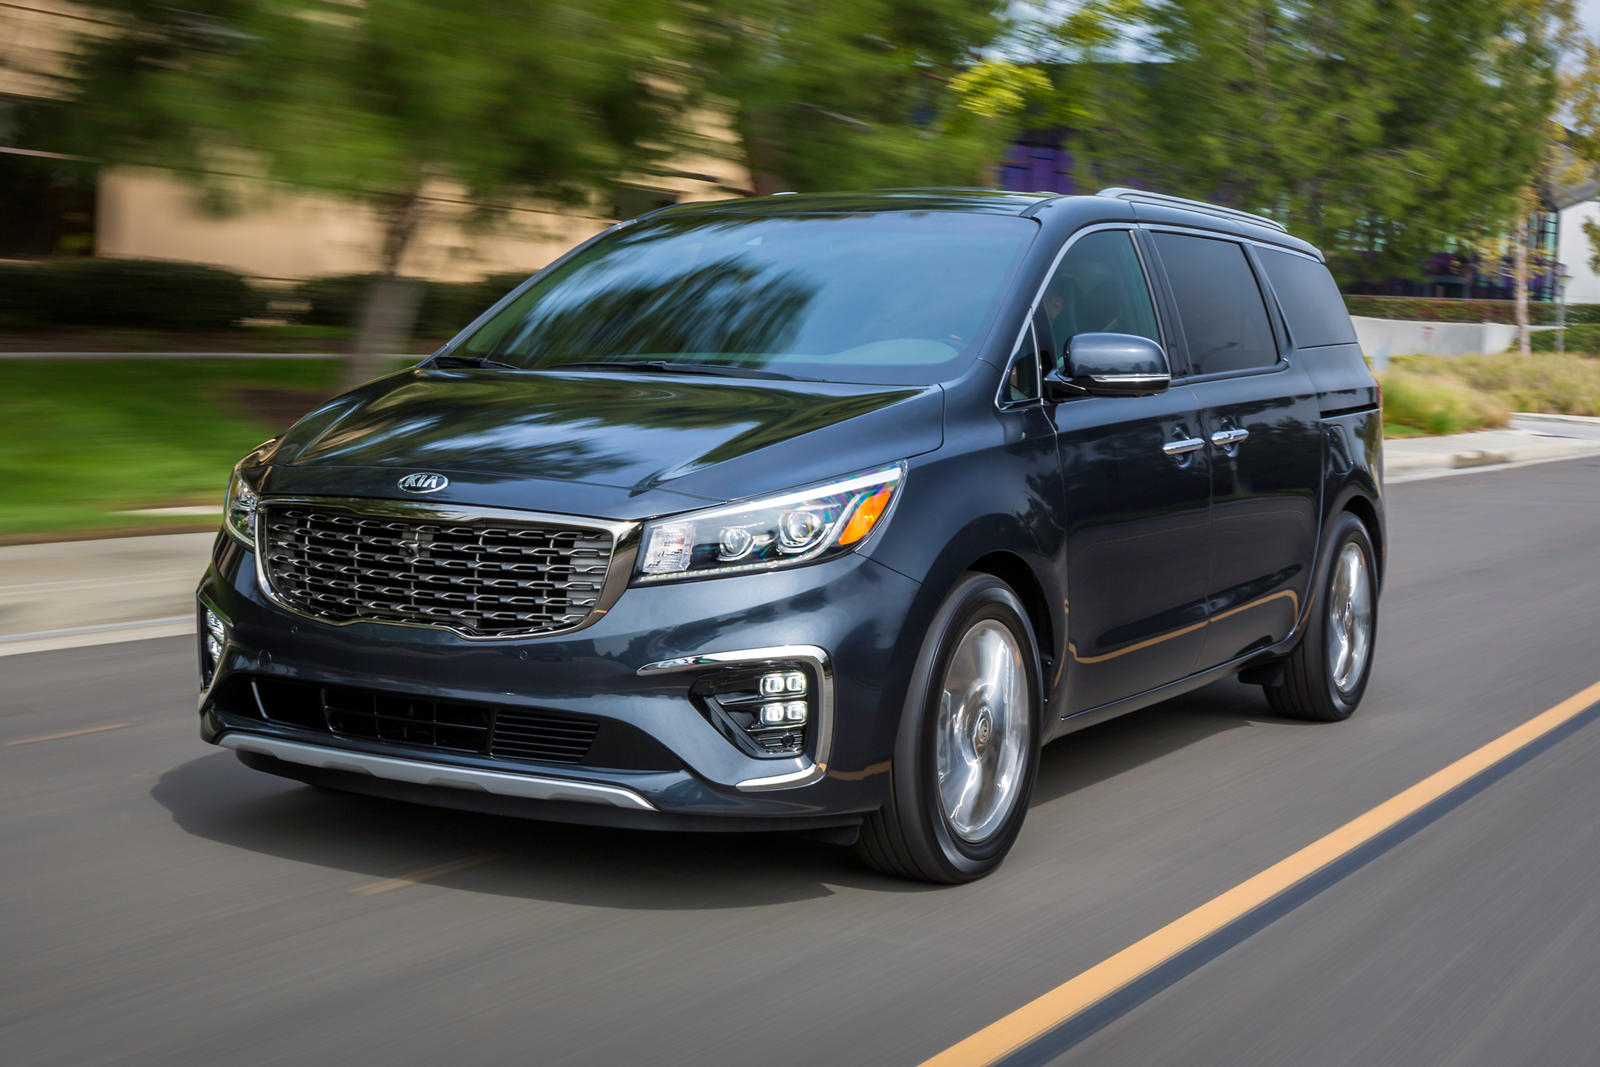 All-New 2021 Kia Sedona Coming Soon With Big Changes | Carbuzz - 2022 Kia Sedona Interior, Specs Update, Rumor Release, Change